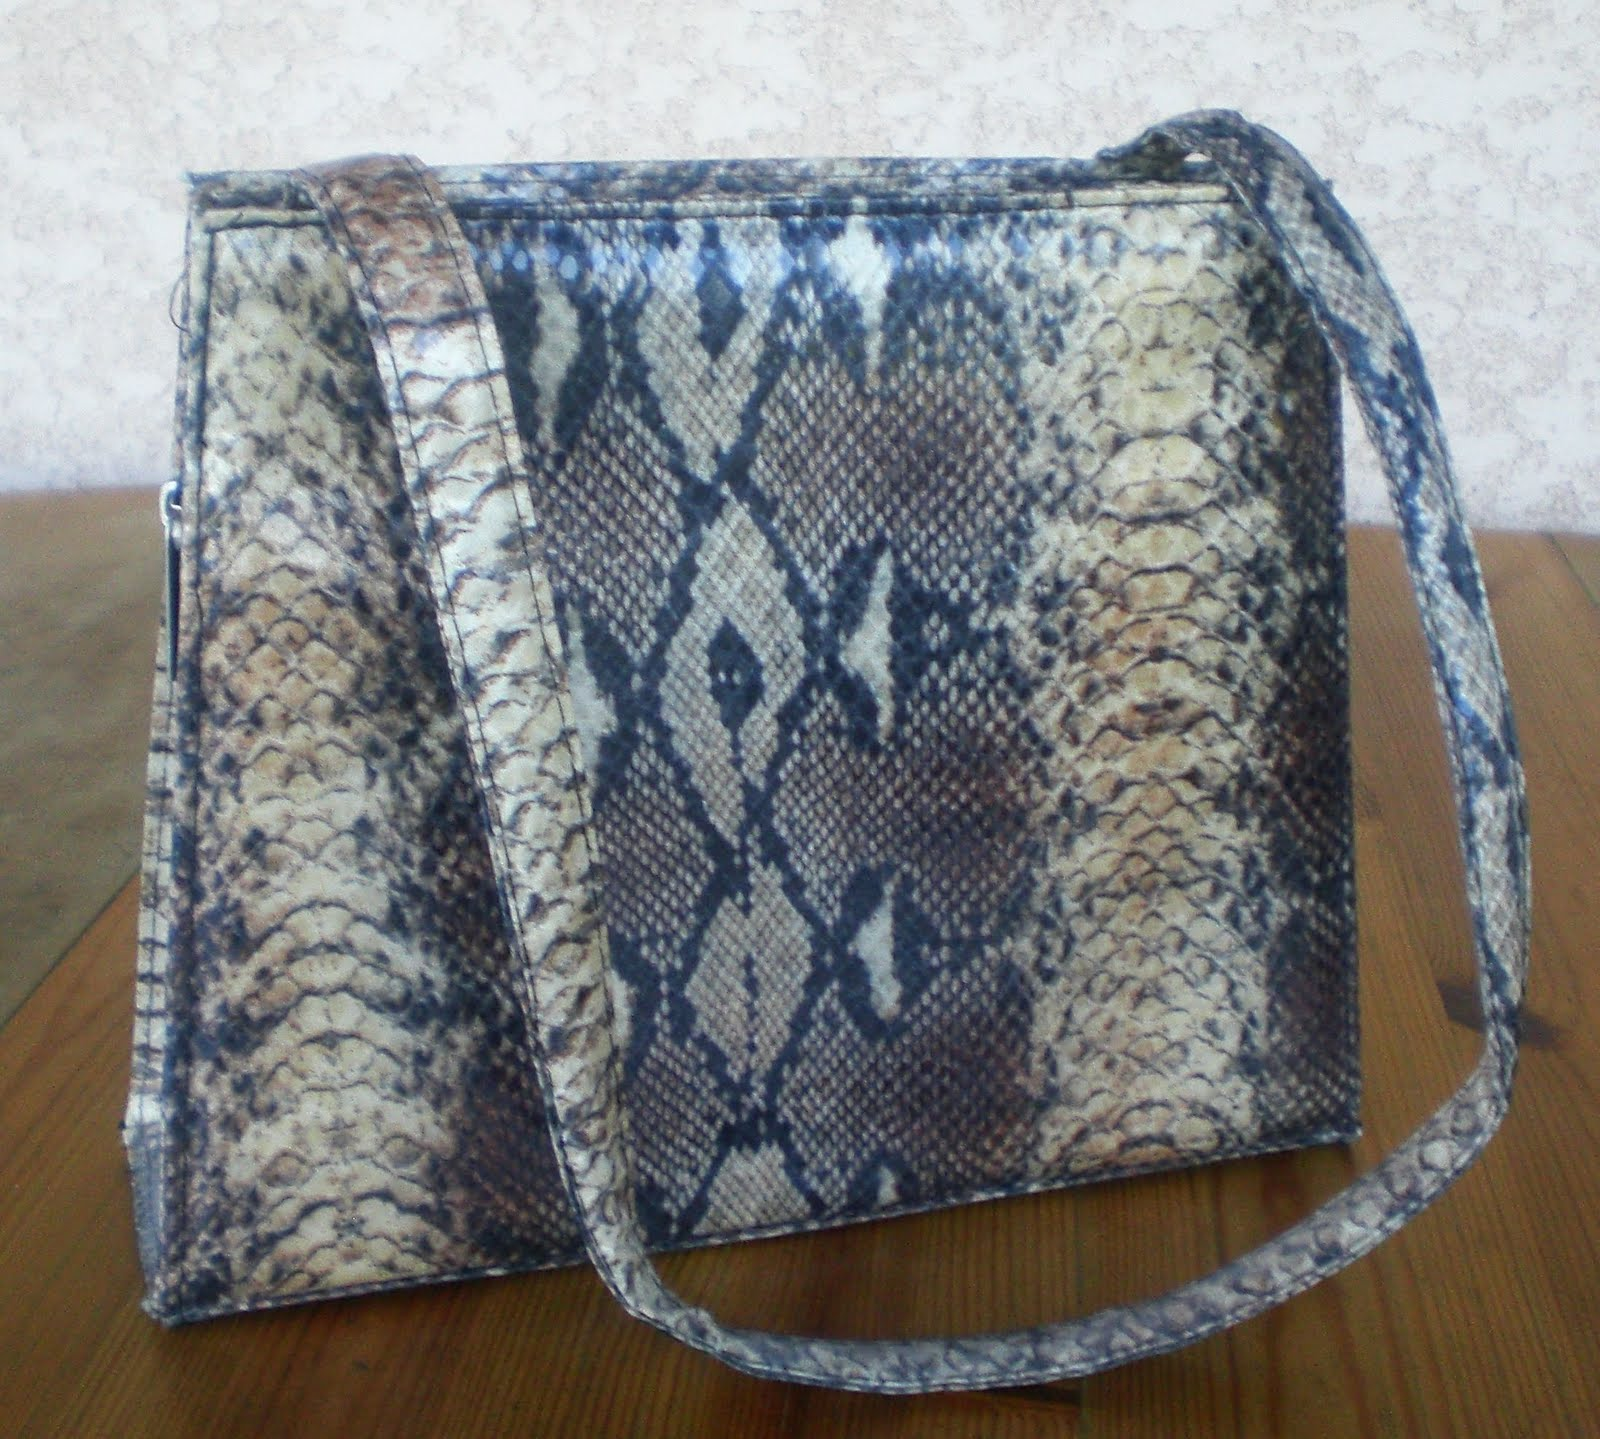 Miss coco vide son dressing montpellier h rault 34 sac a main imitation serpent - Vide dressing montpellier ...